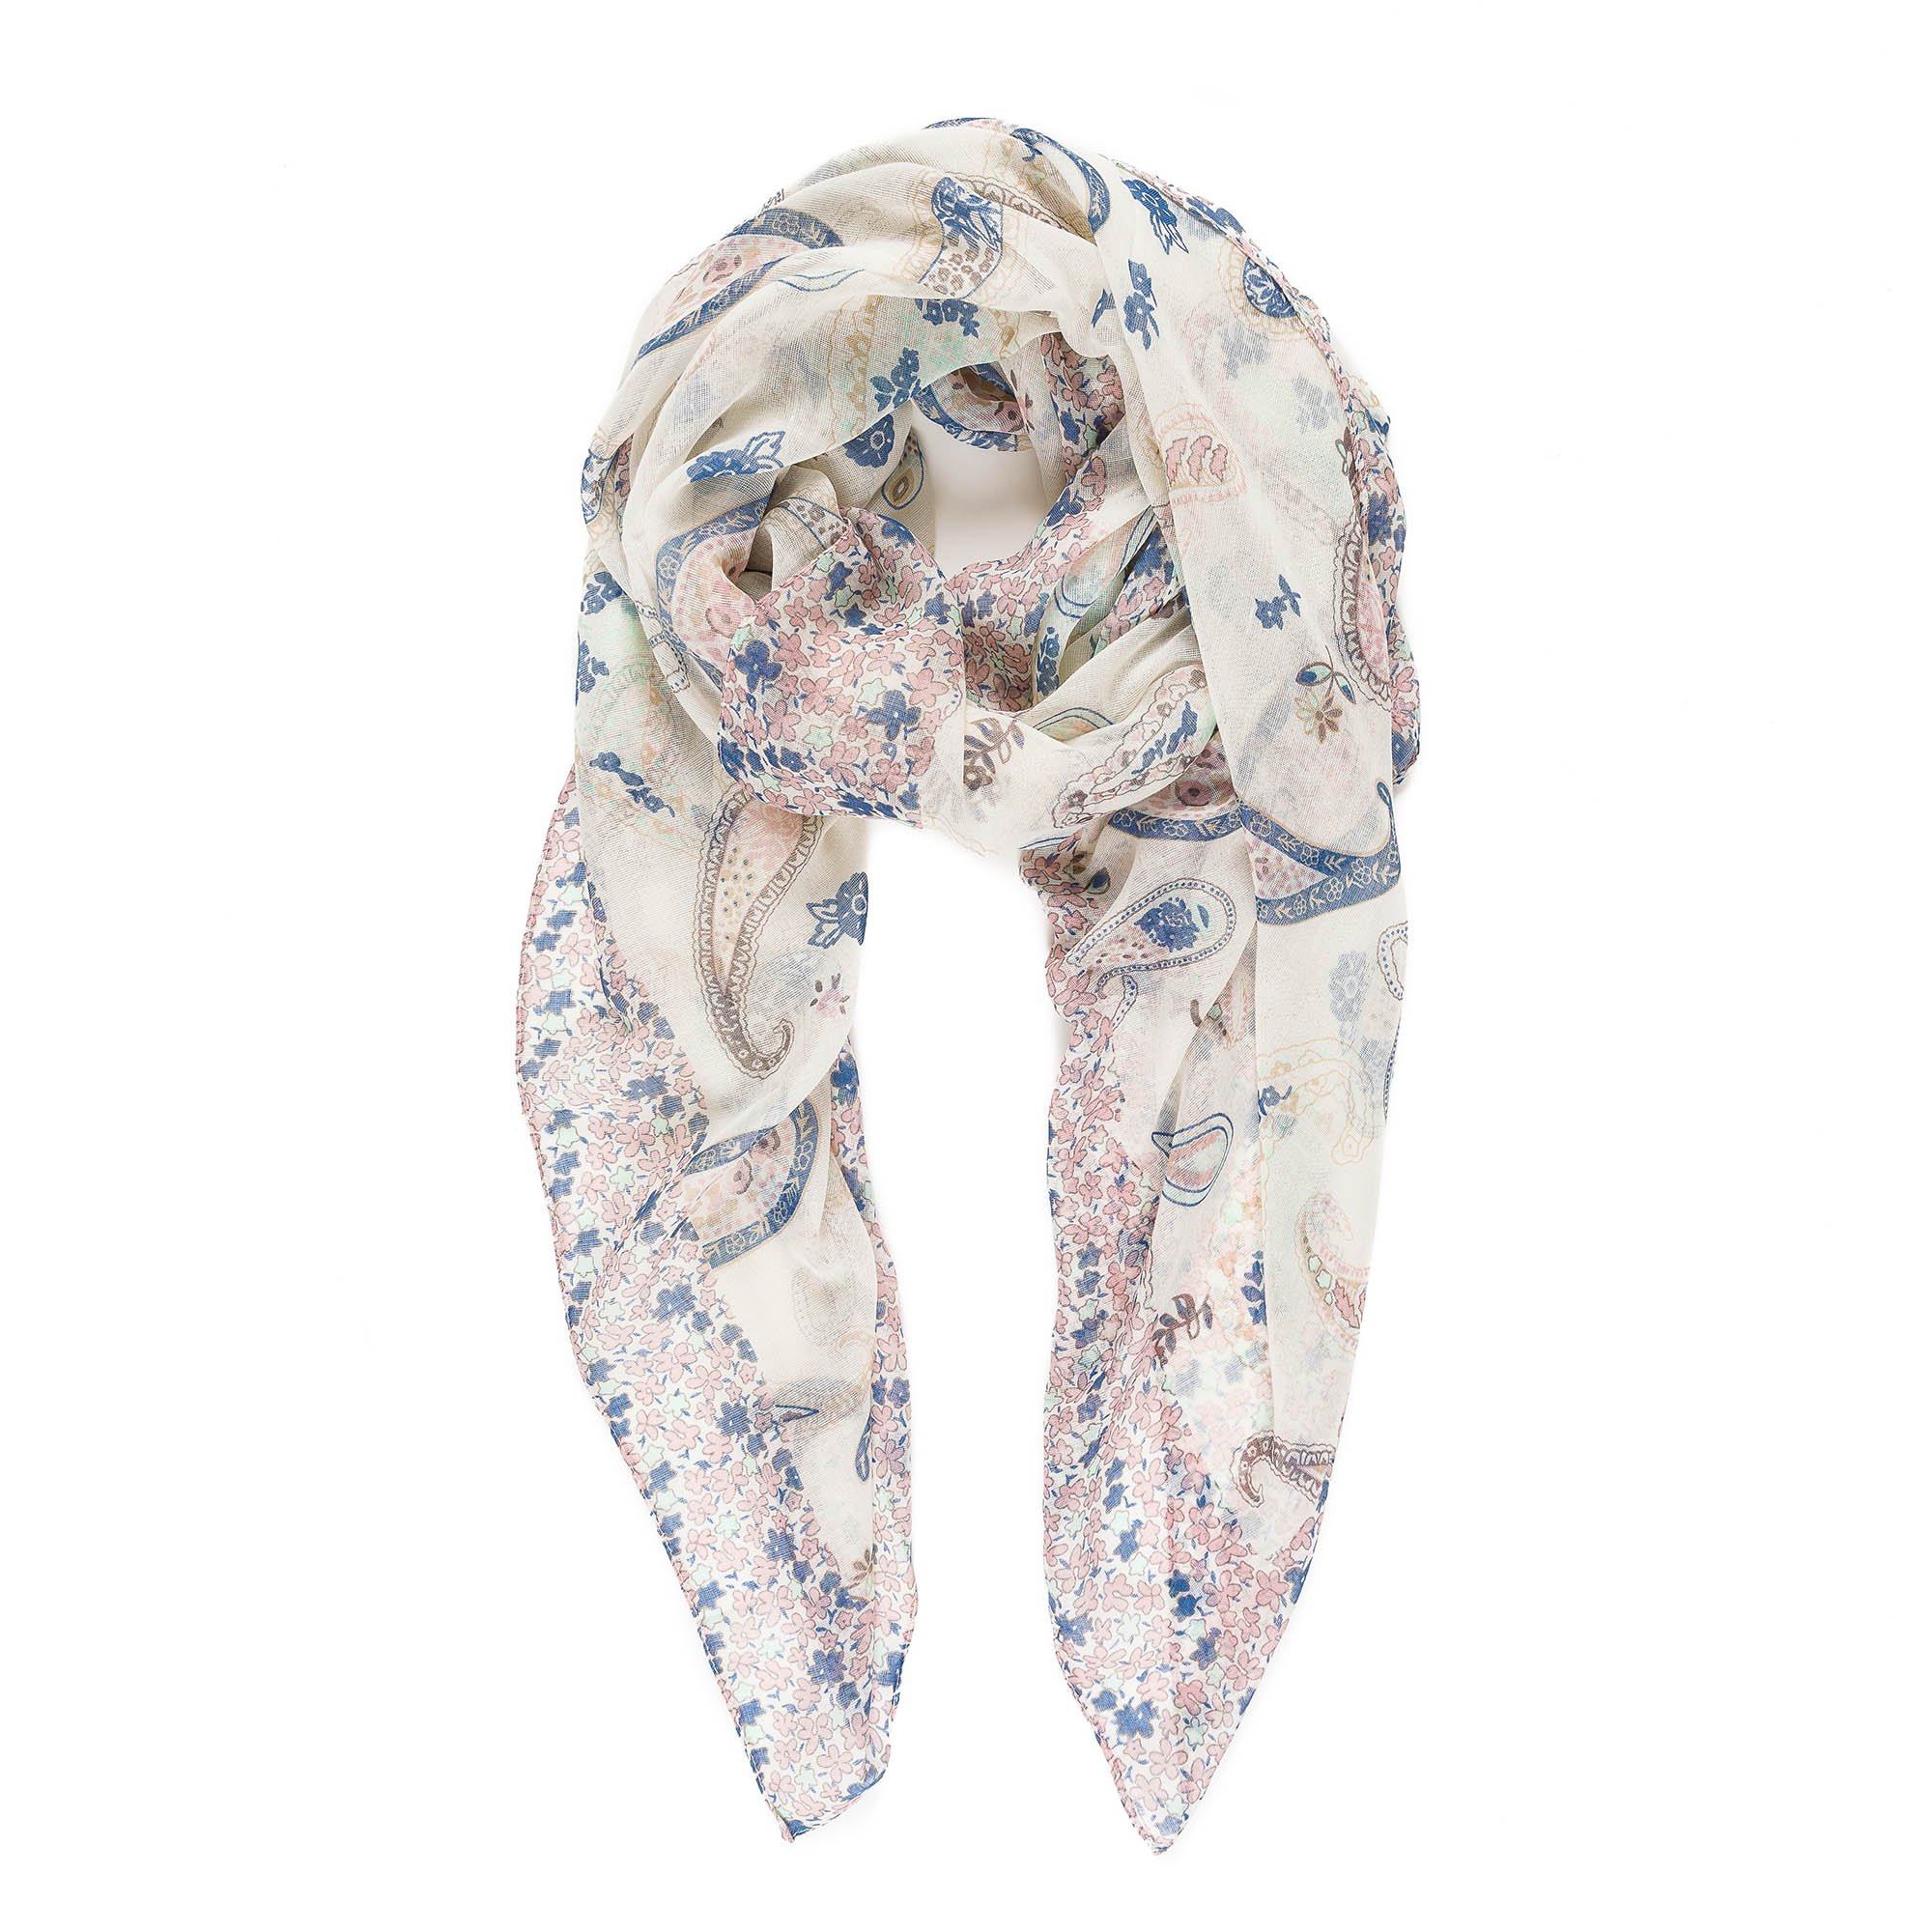 Scarf for Women Lightweight Paisley Fashion Fall Winter Scarves Shawl Wraps (F002-2)